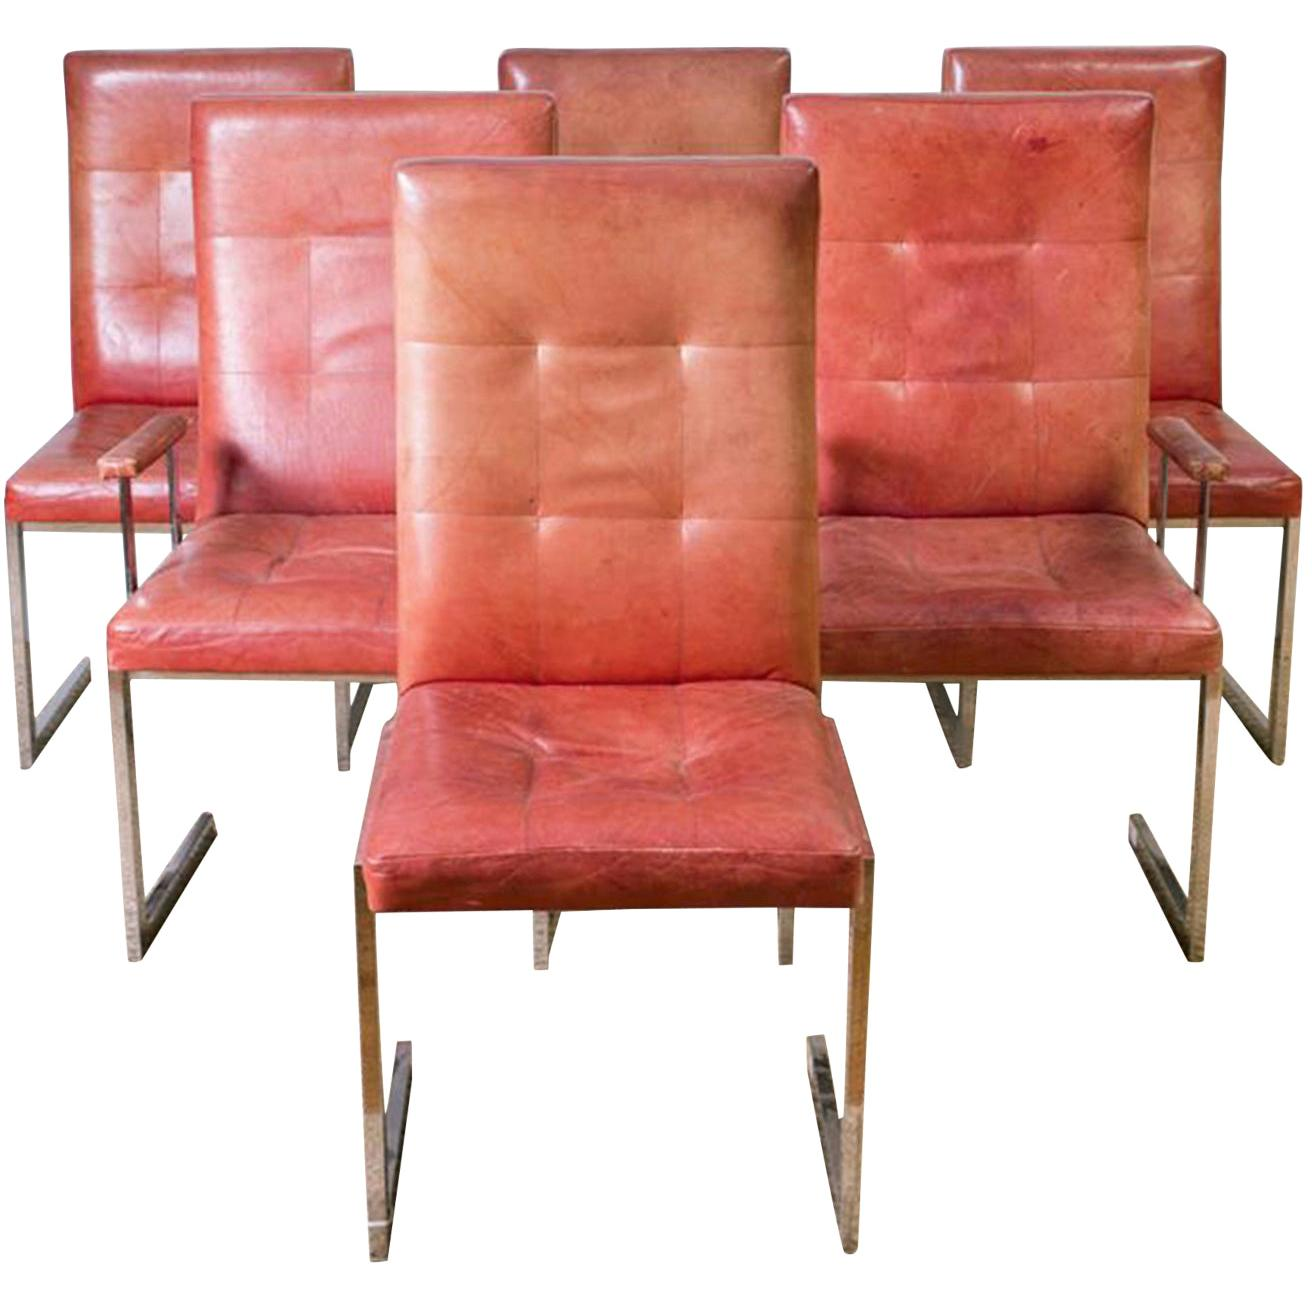 Set of Milo Baughman Style Chrome and Leather Dining Chairs